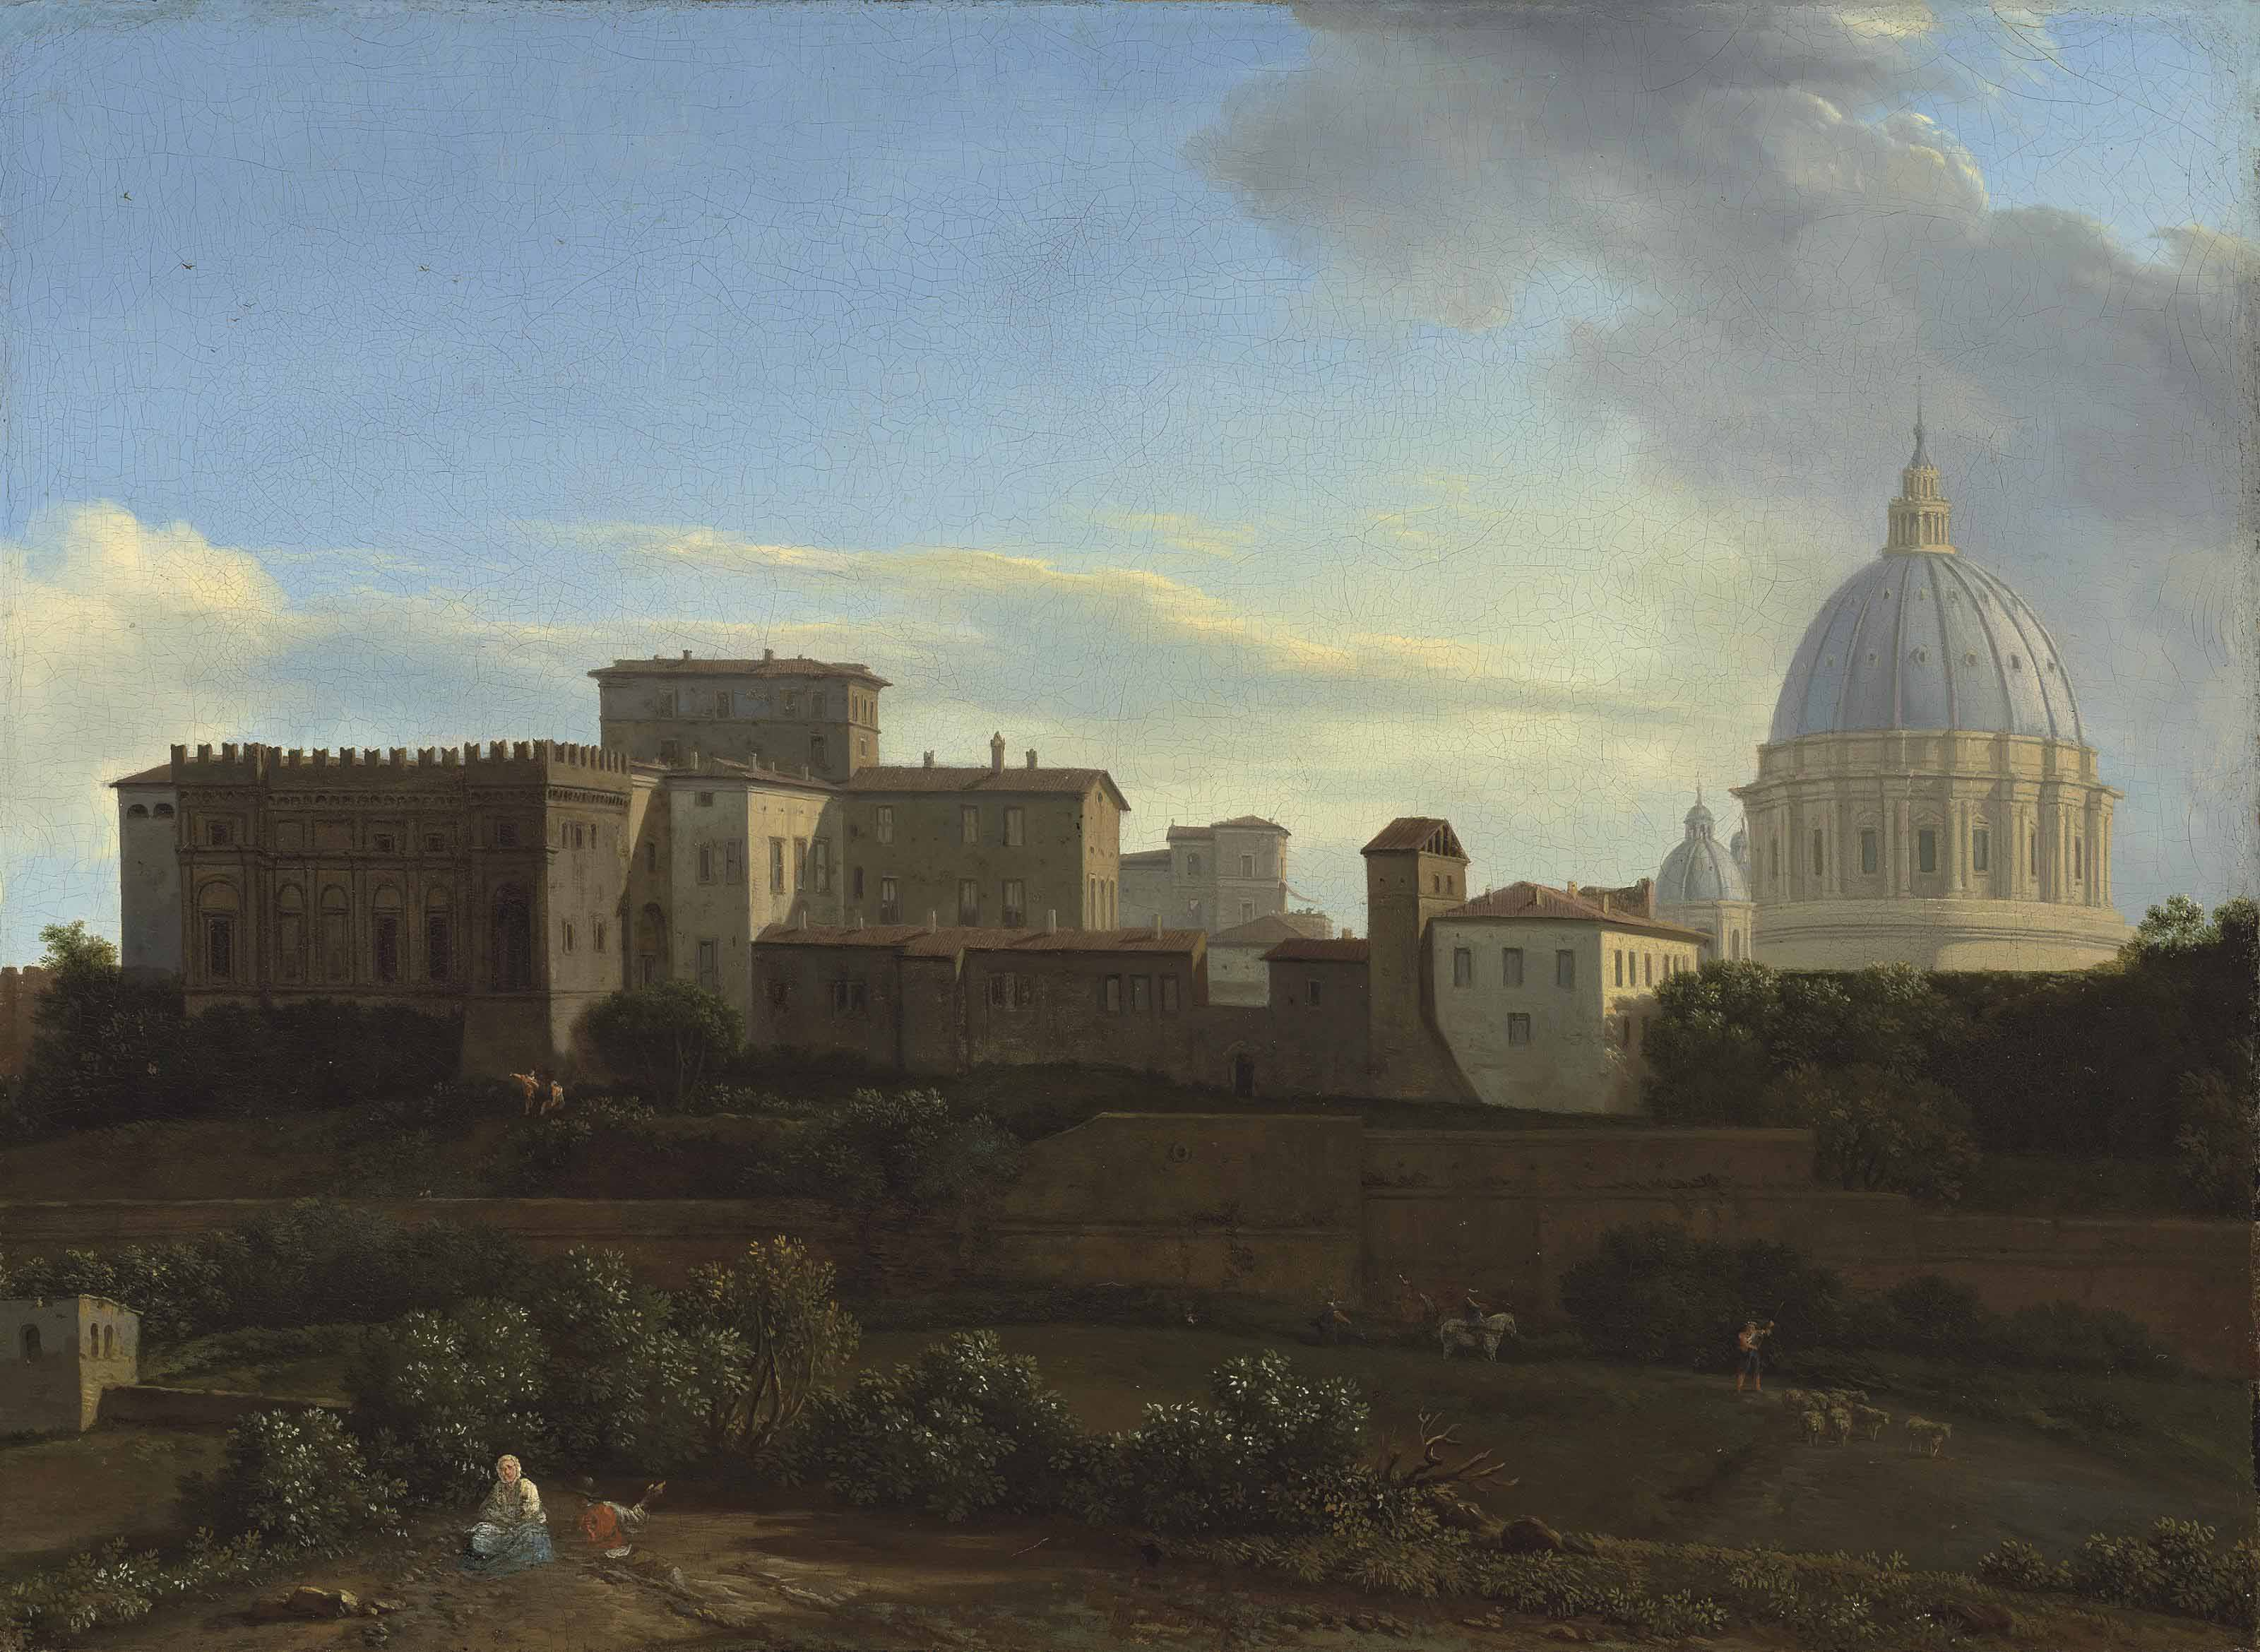 A view of the Vatican, Rome, with the Sistine Chapel and St. Peter's Basilica, from the Janiculum